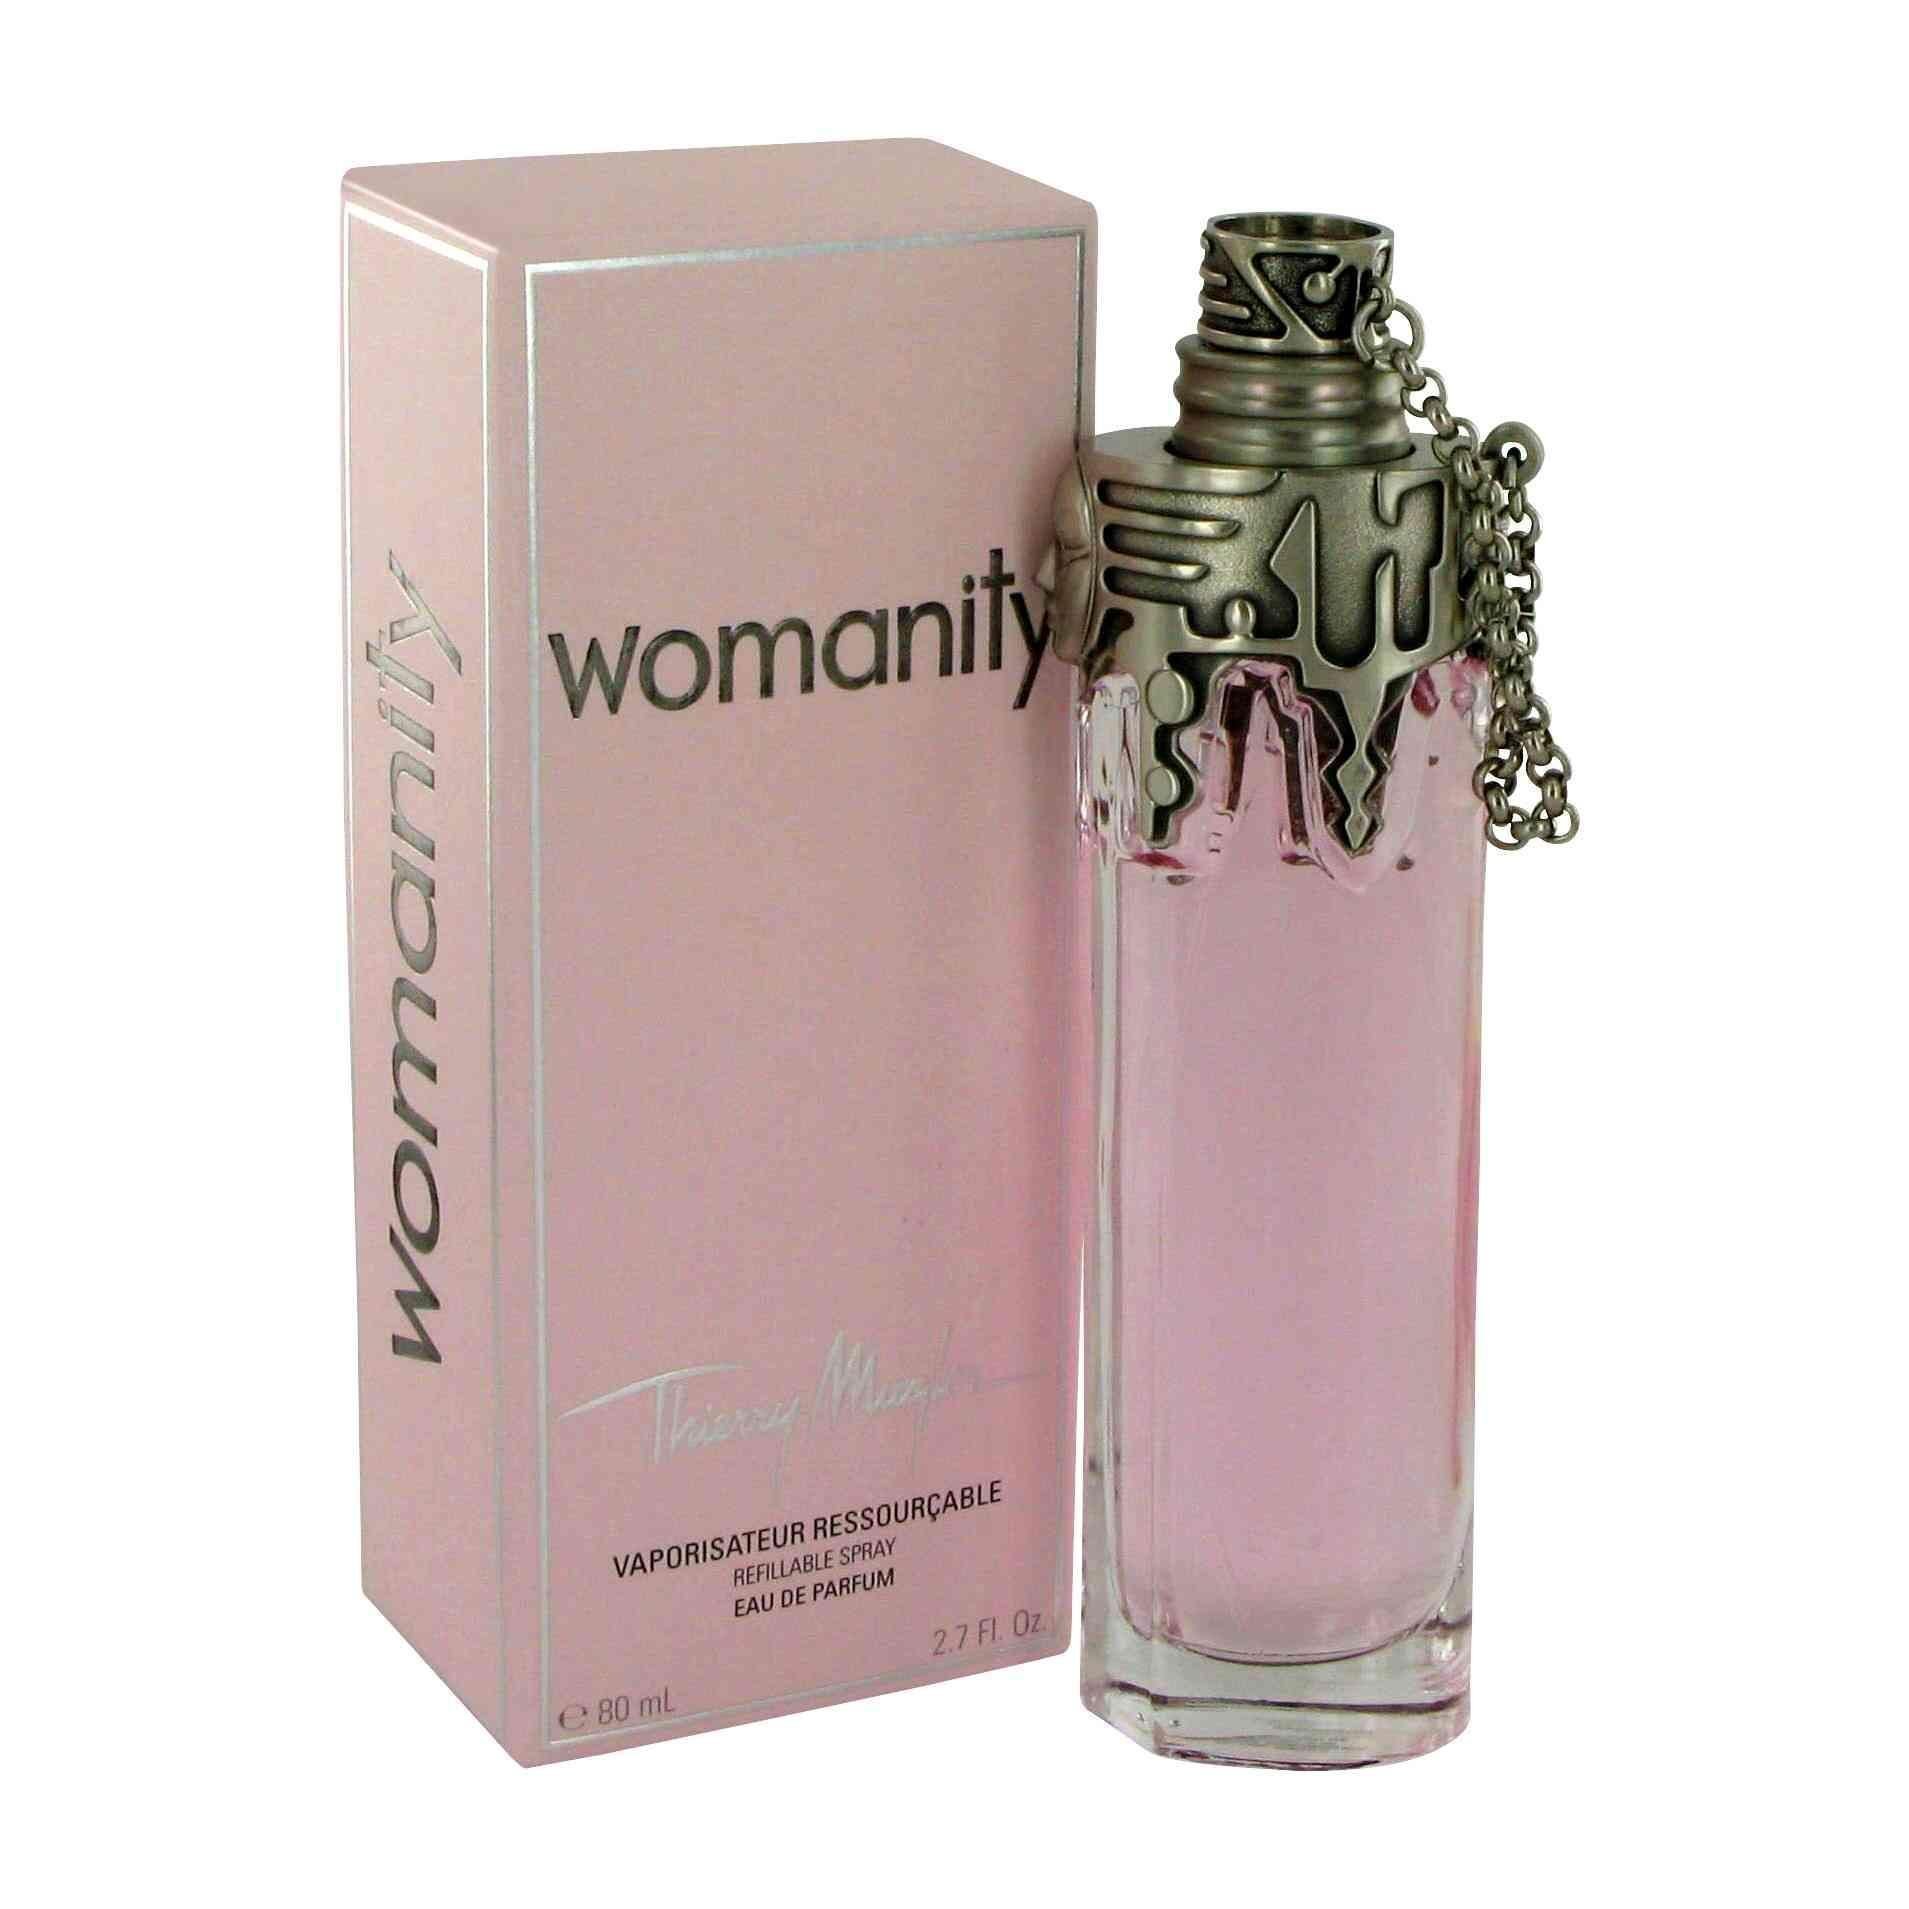 Thierry Mugler Womanity Womens 27 Ounce Eau De Parfum Spray Black Original Antonio Banderas Radiant Seduction In Man Edt 100ml Caviar